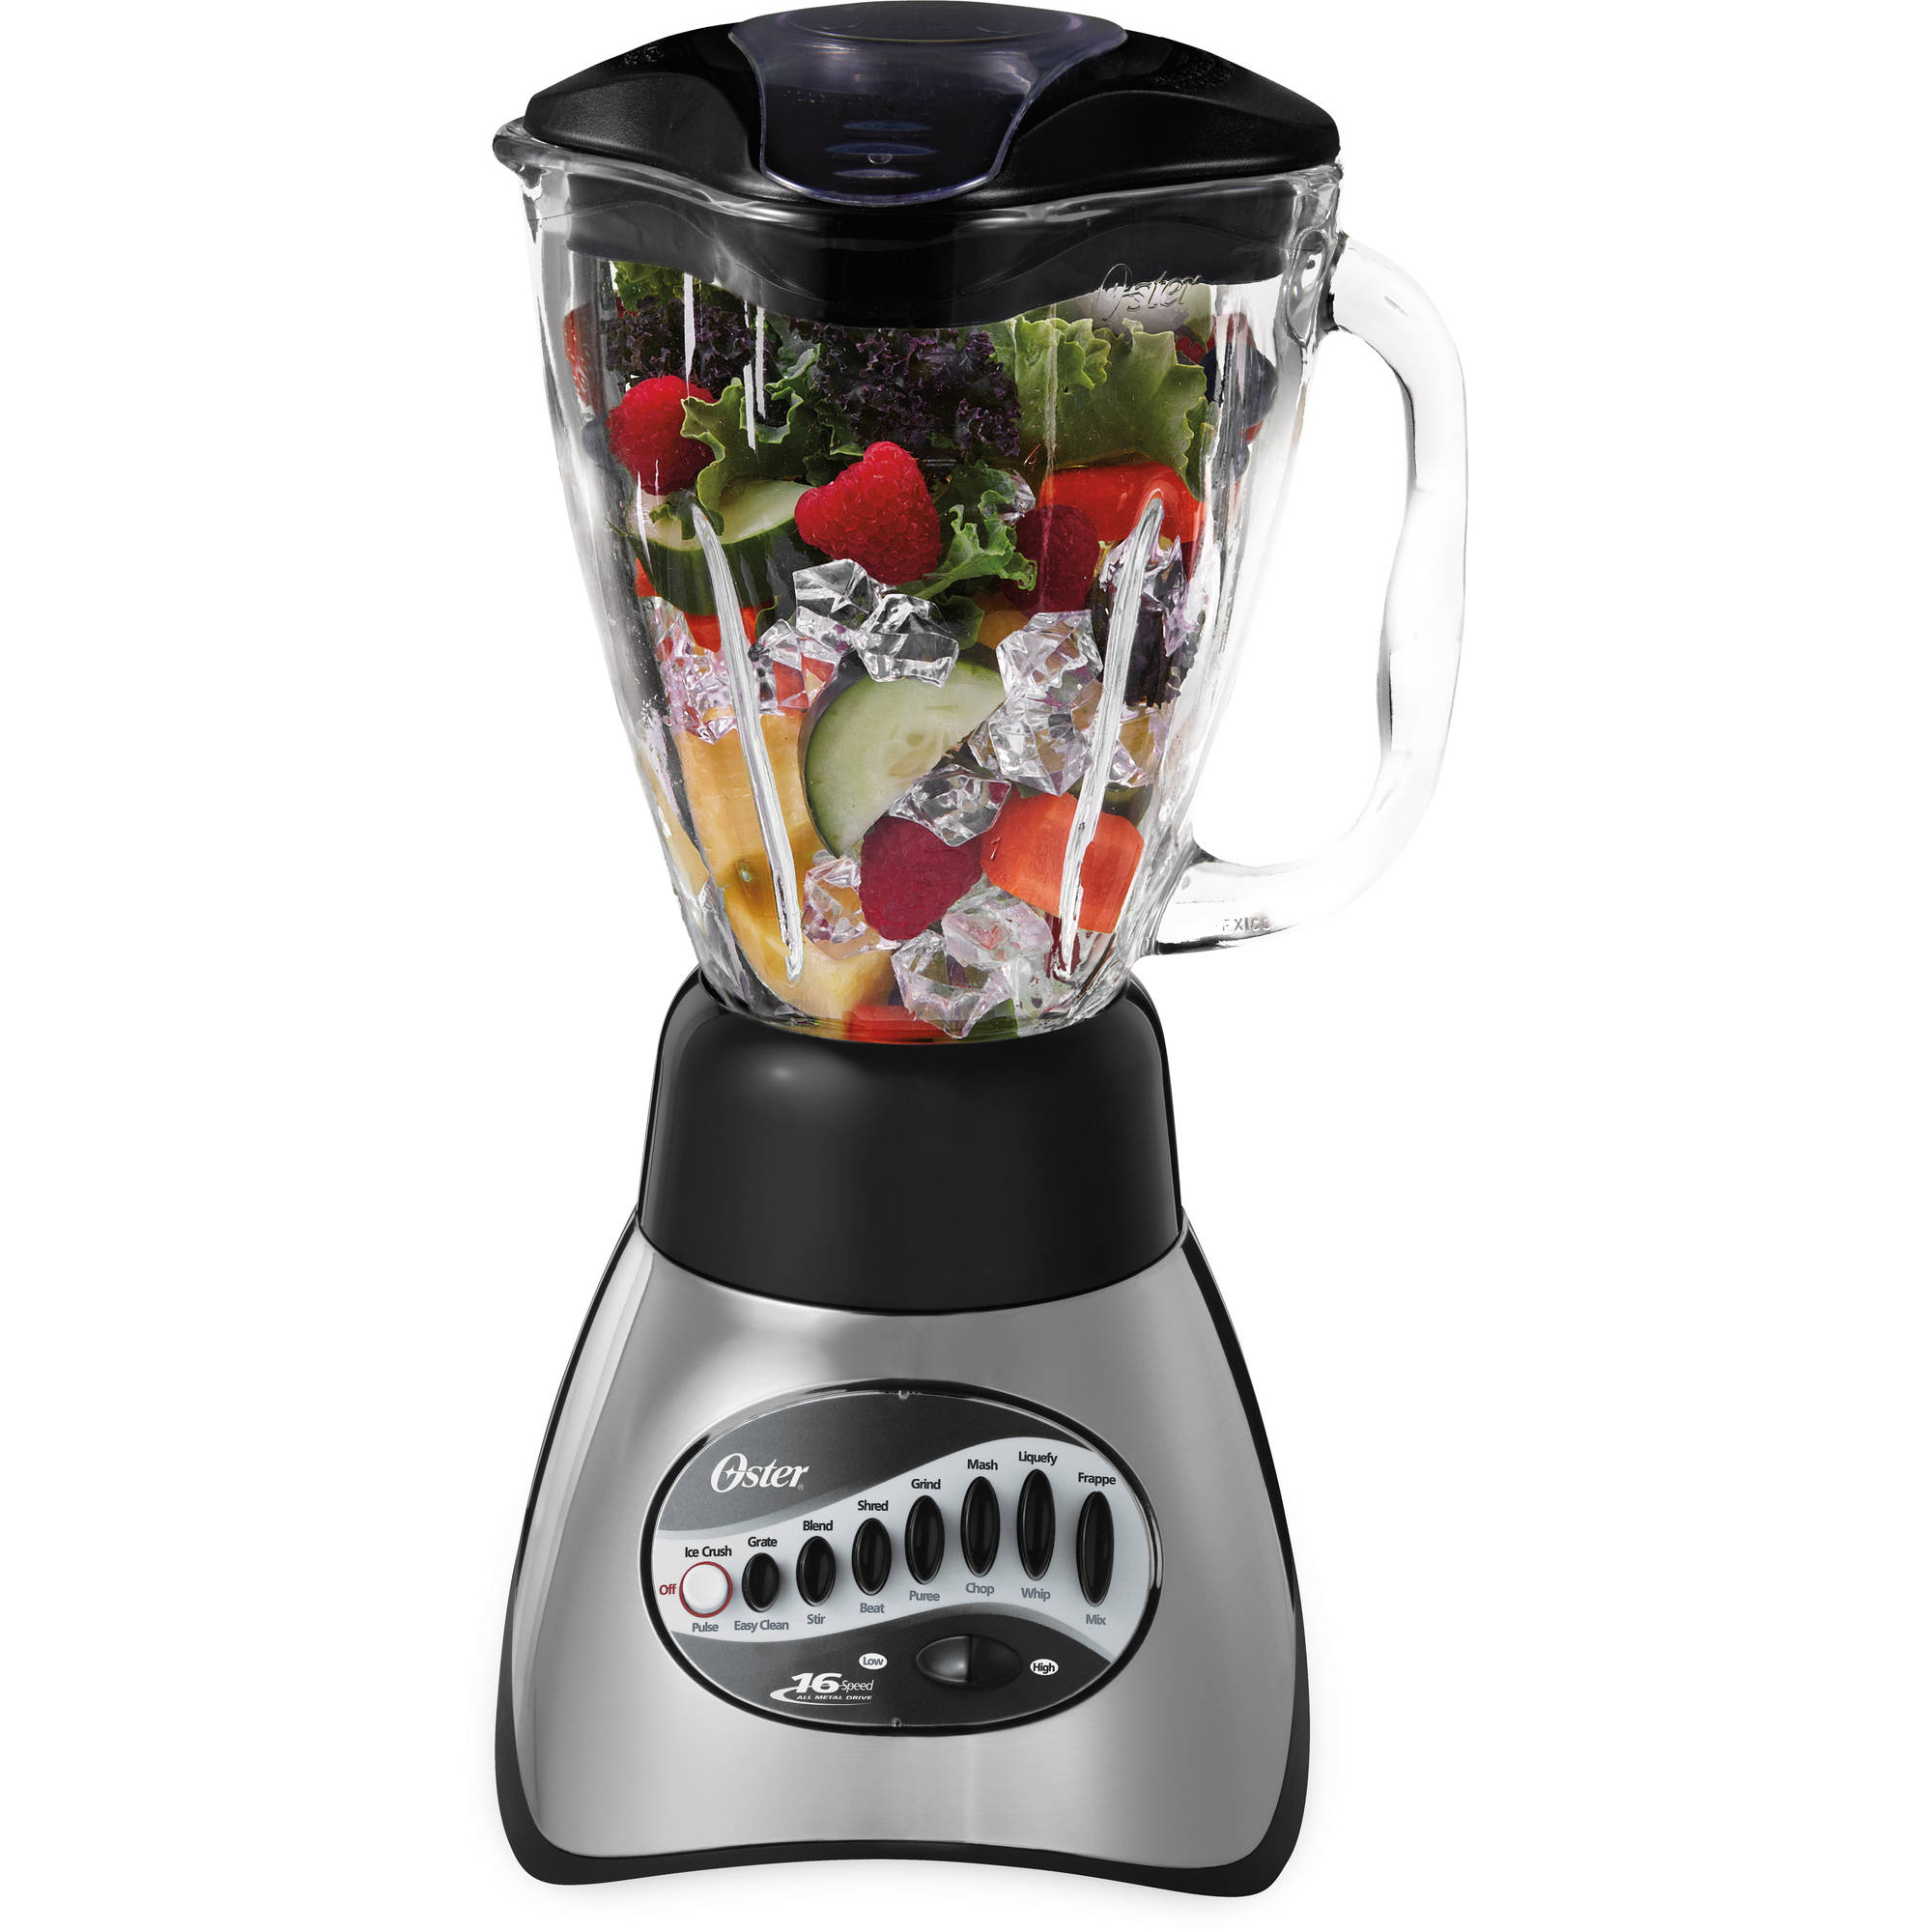 Oster 16-Speed Precise Blend 200 Blender, Brushed Nickel, 006812-001-NP0